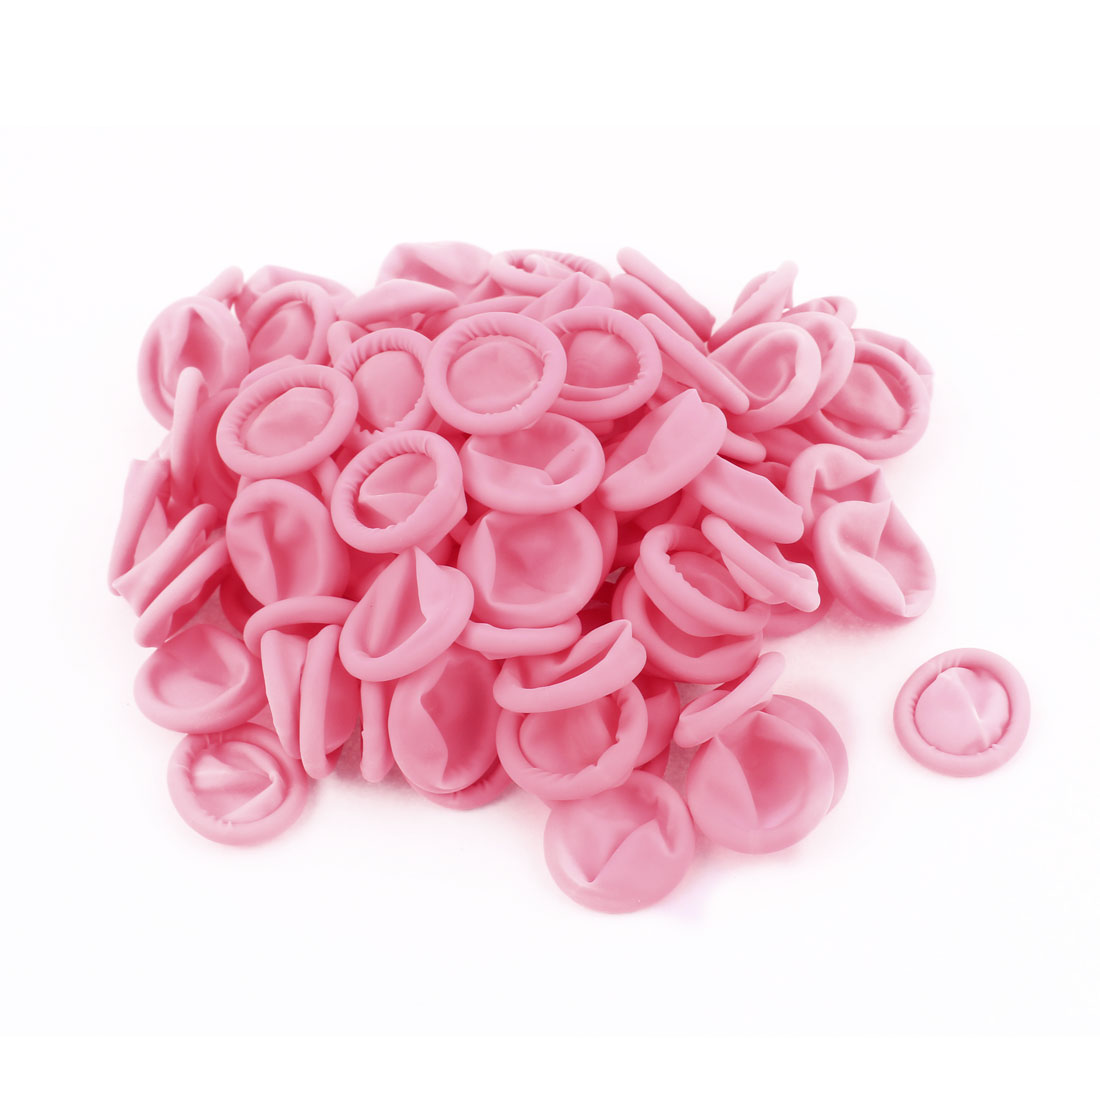 100Pcs Finger Protector Anti Static Rubber Latex Finger Cots Disposable Pink